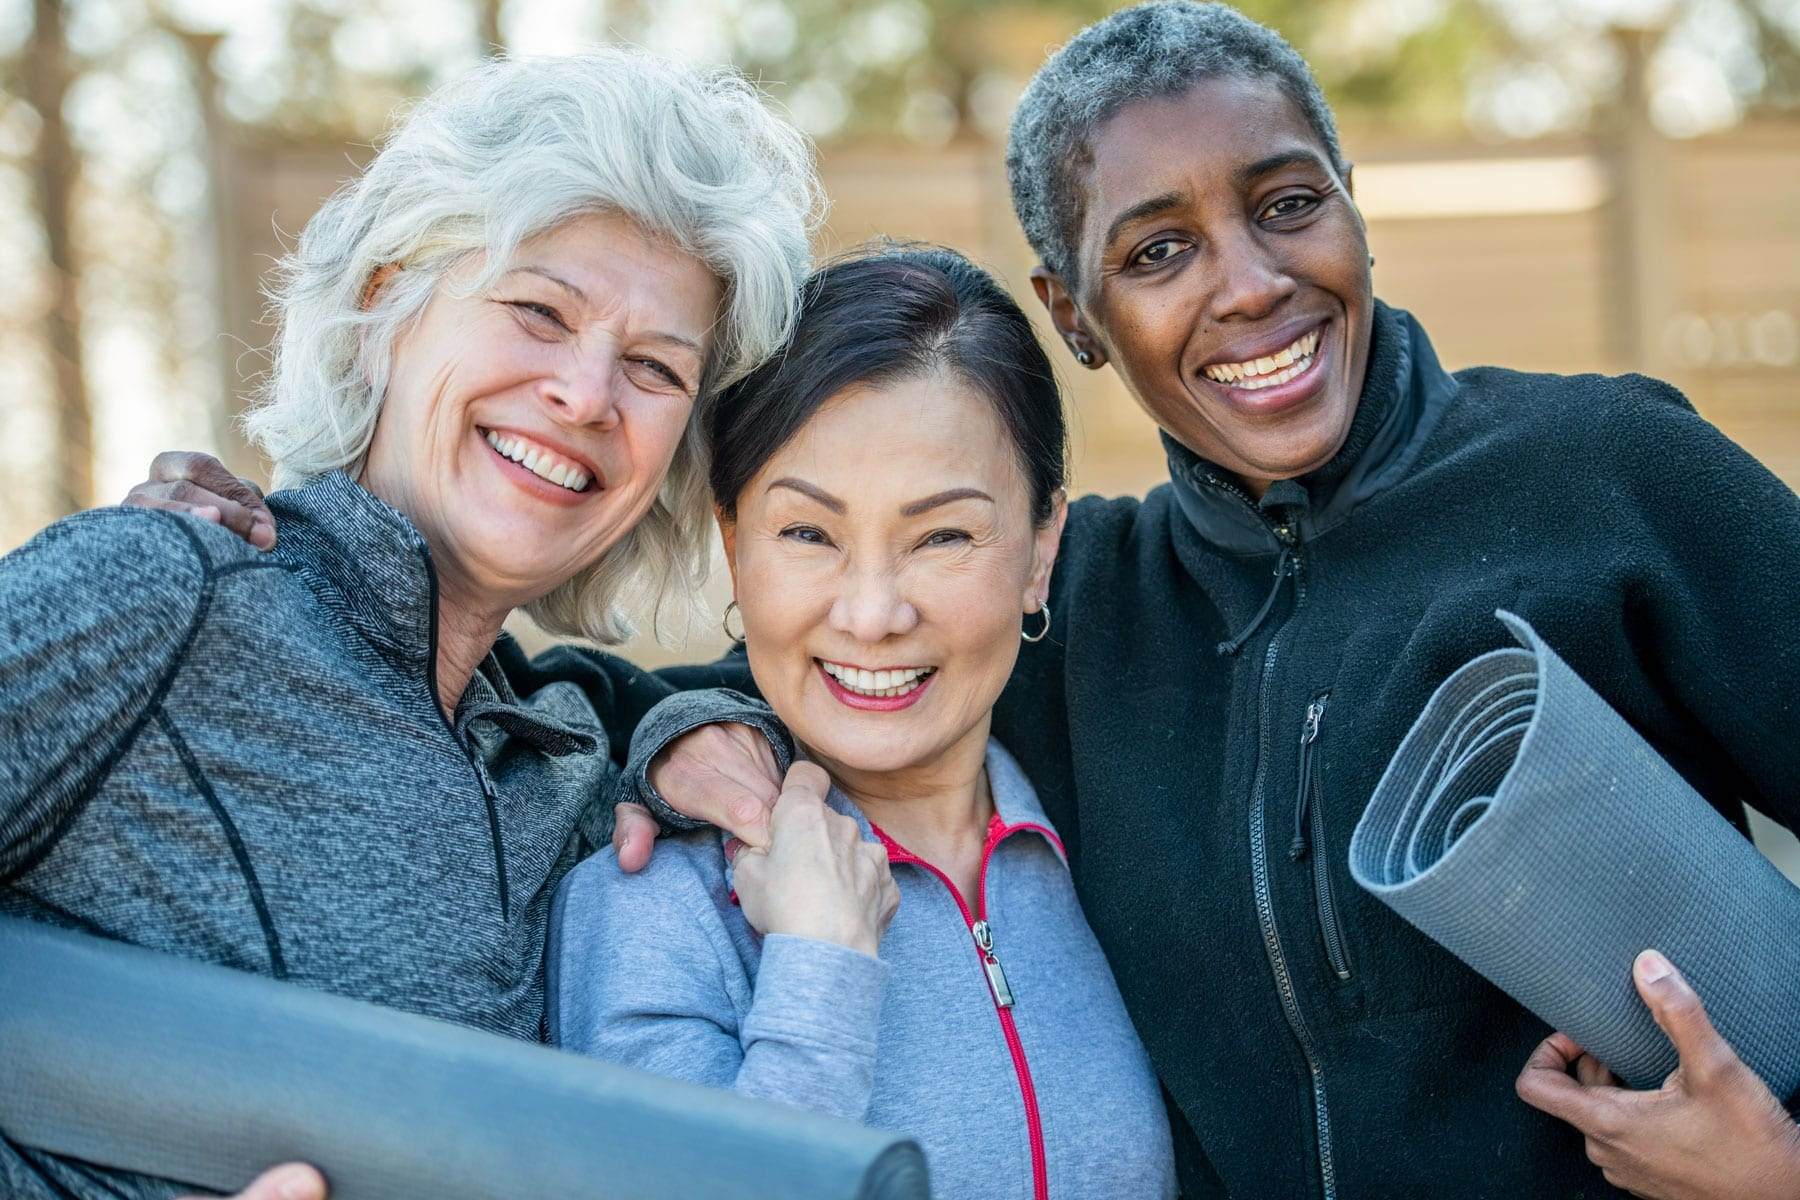 3 women smile after exercising together in the park.